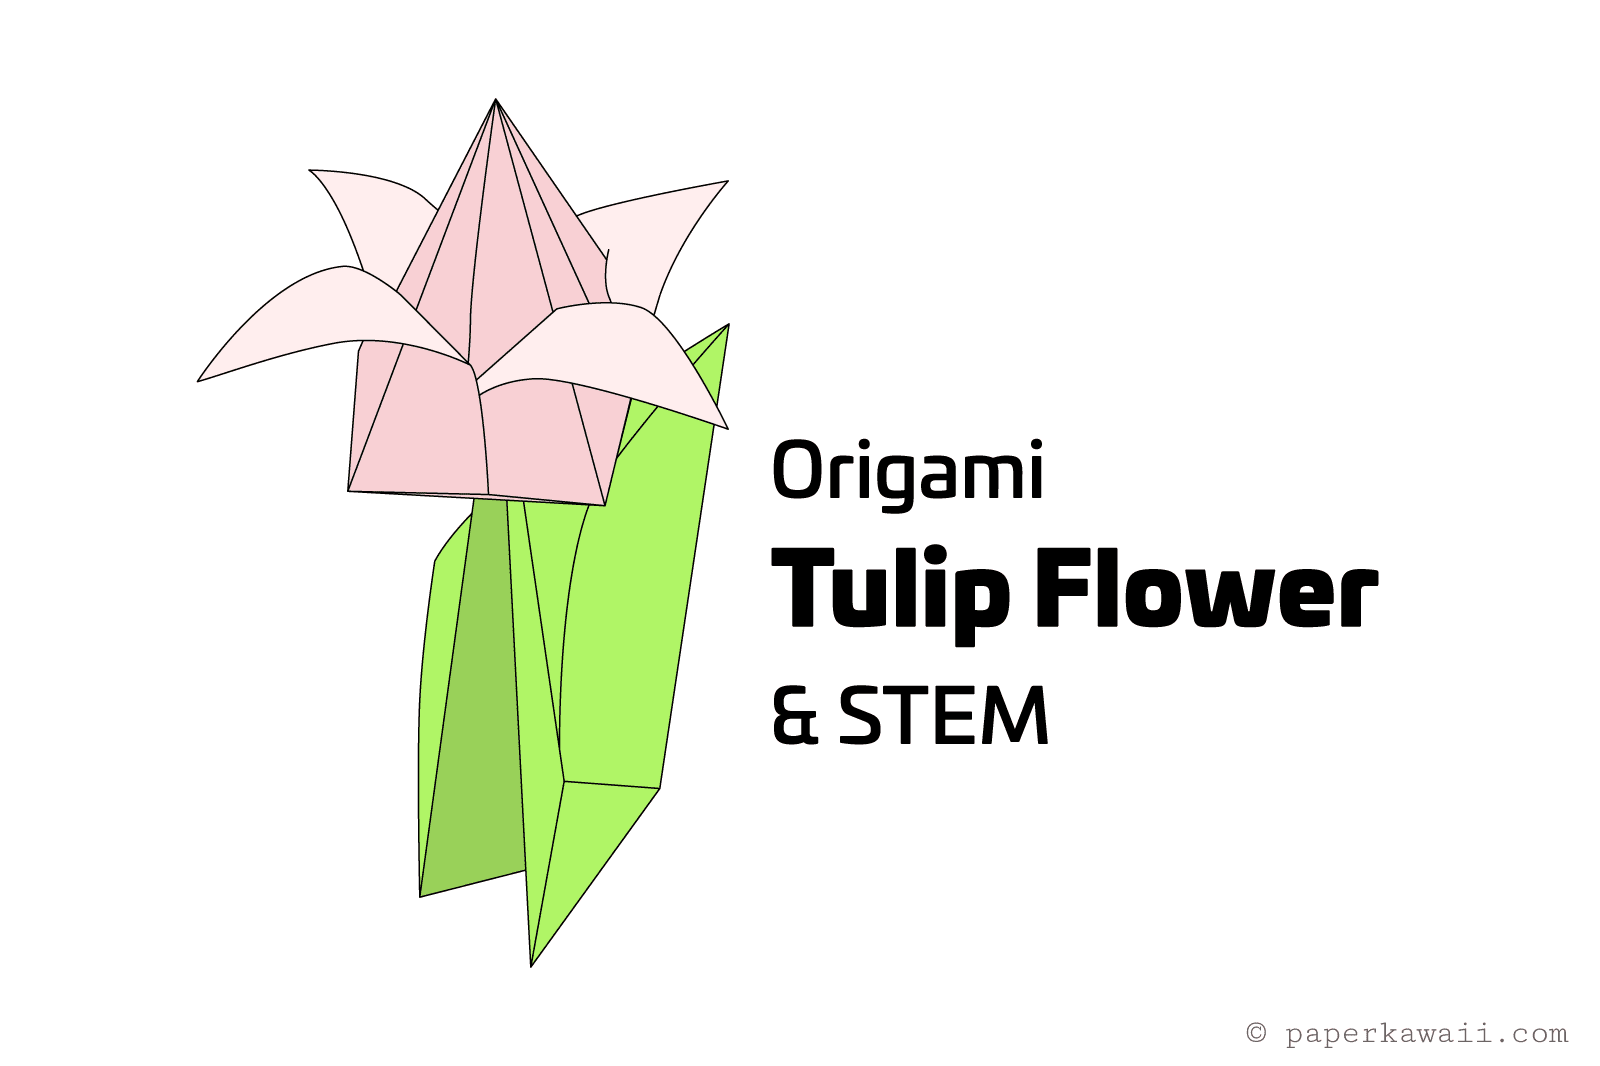 origami flower diagram in english porsche 914 starter wiring how to make an tulip and stem